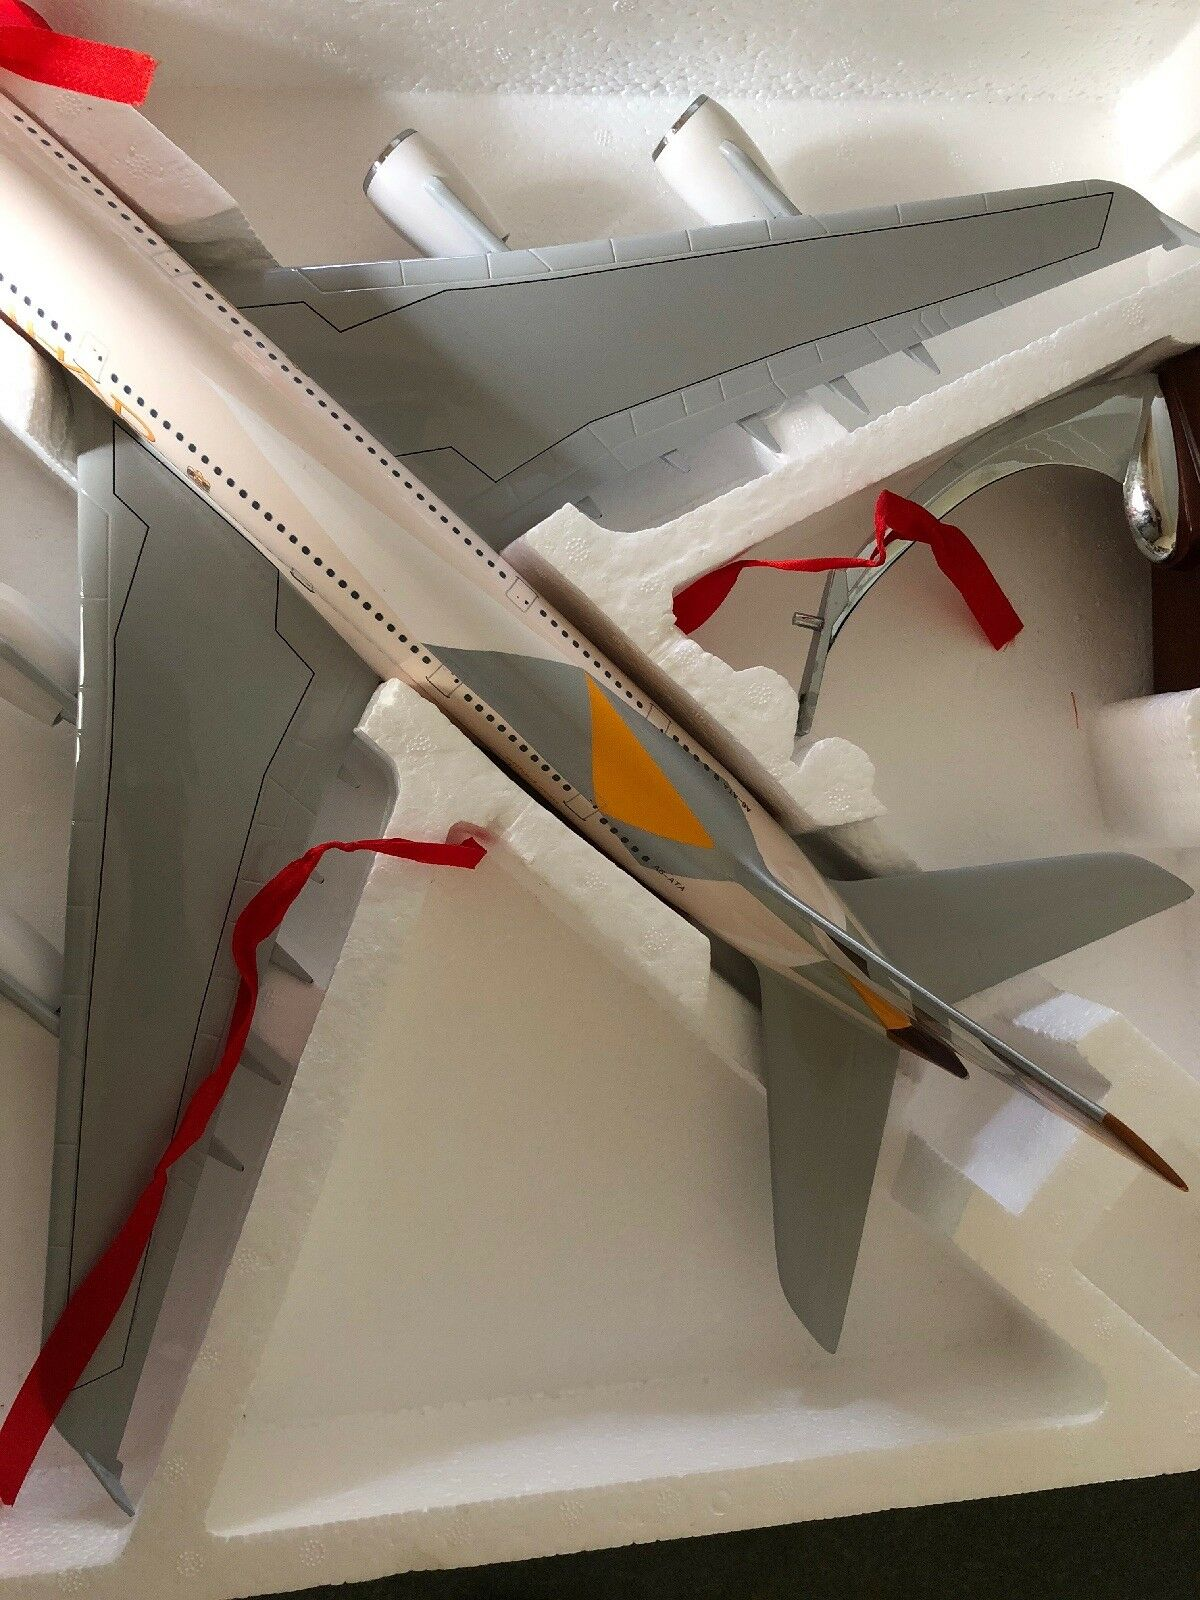 ETIHAD AIRWAYS A380 LARGE PLANE MODEL  1 150 AIRPLANE APX 45cm SOLID